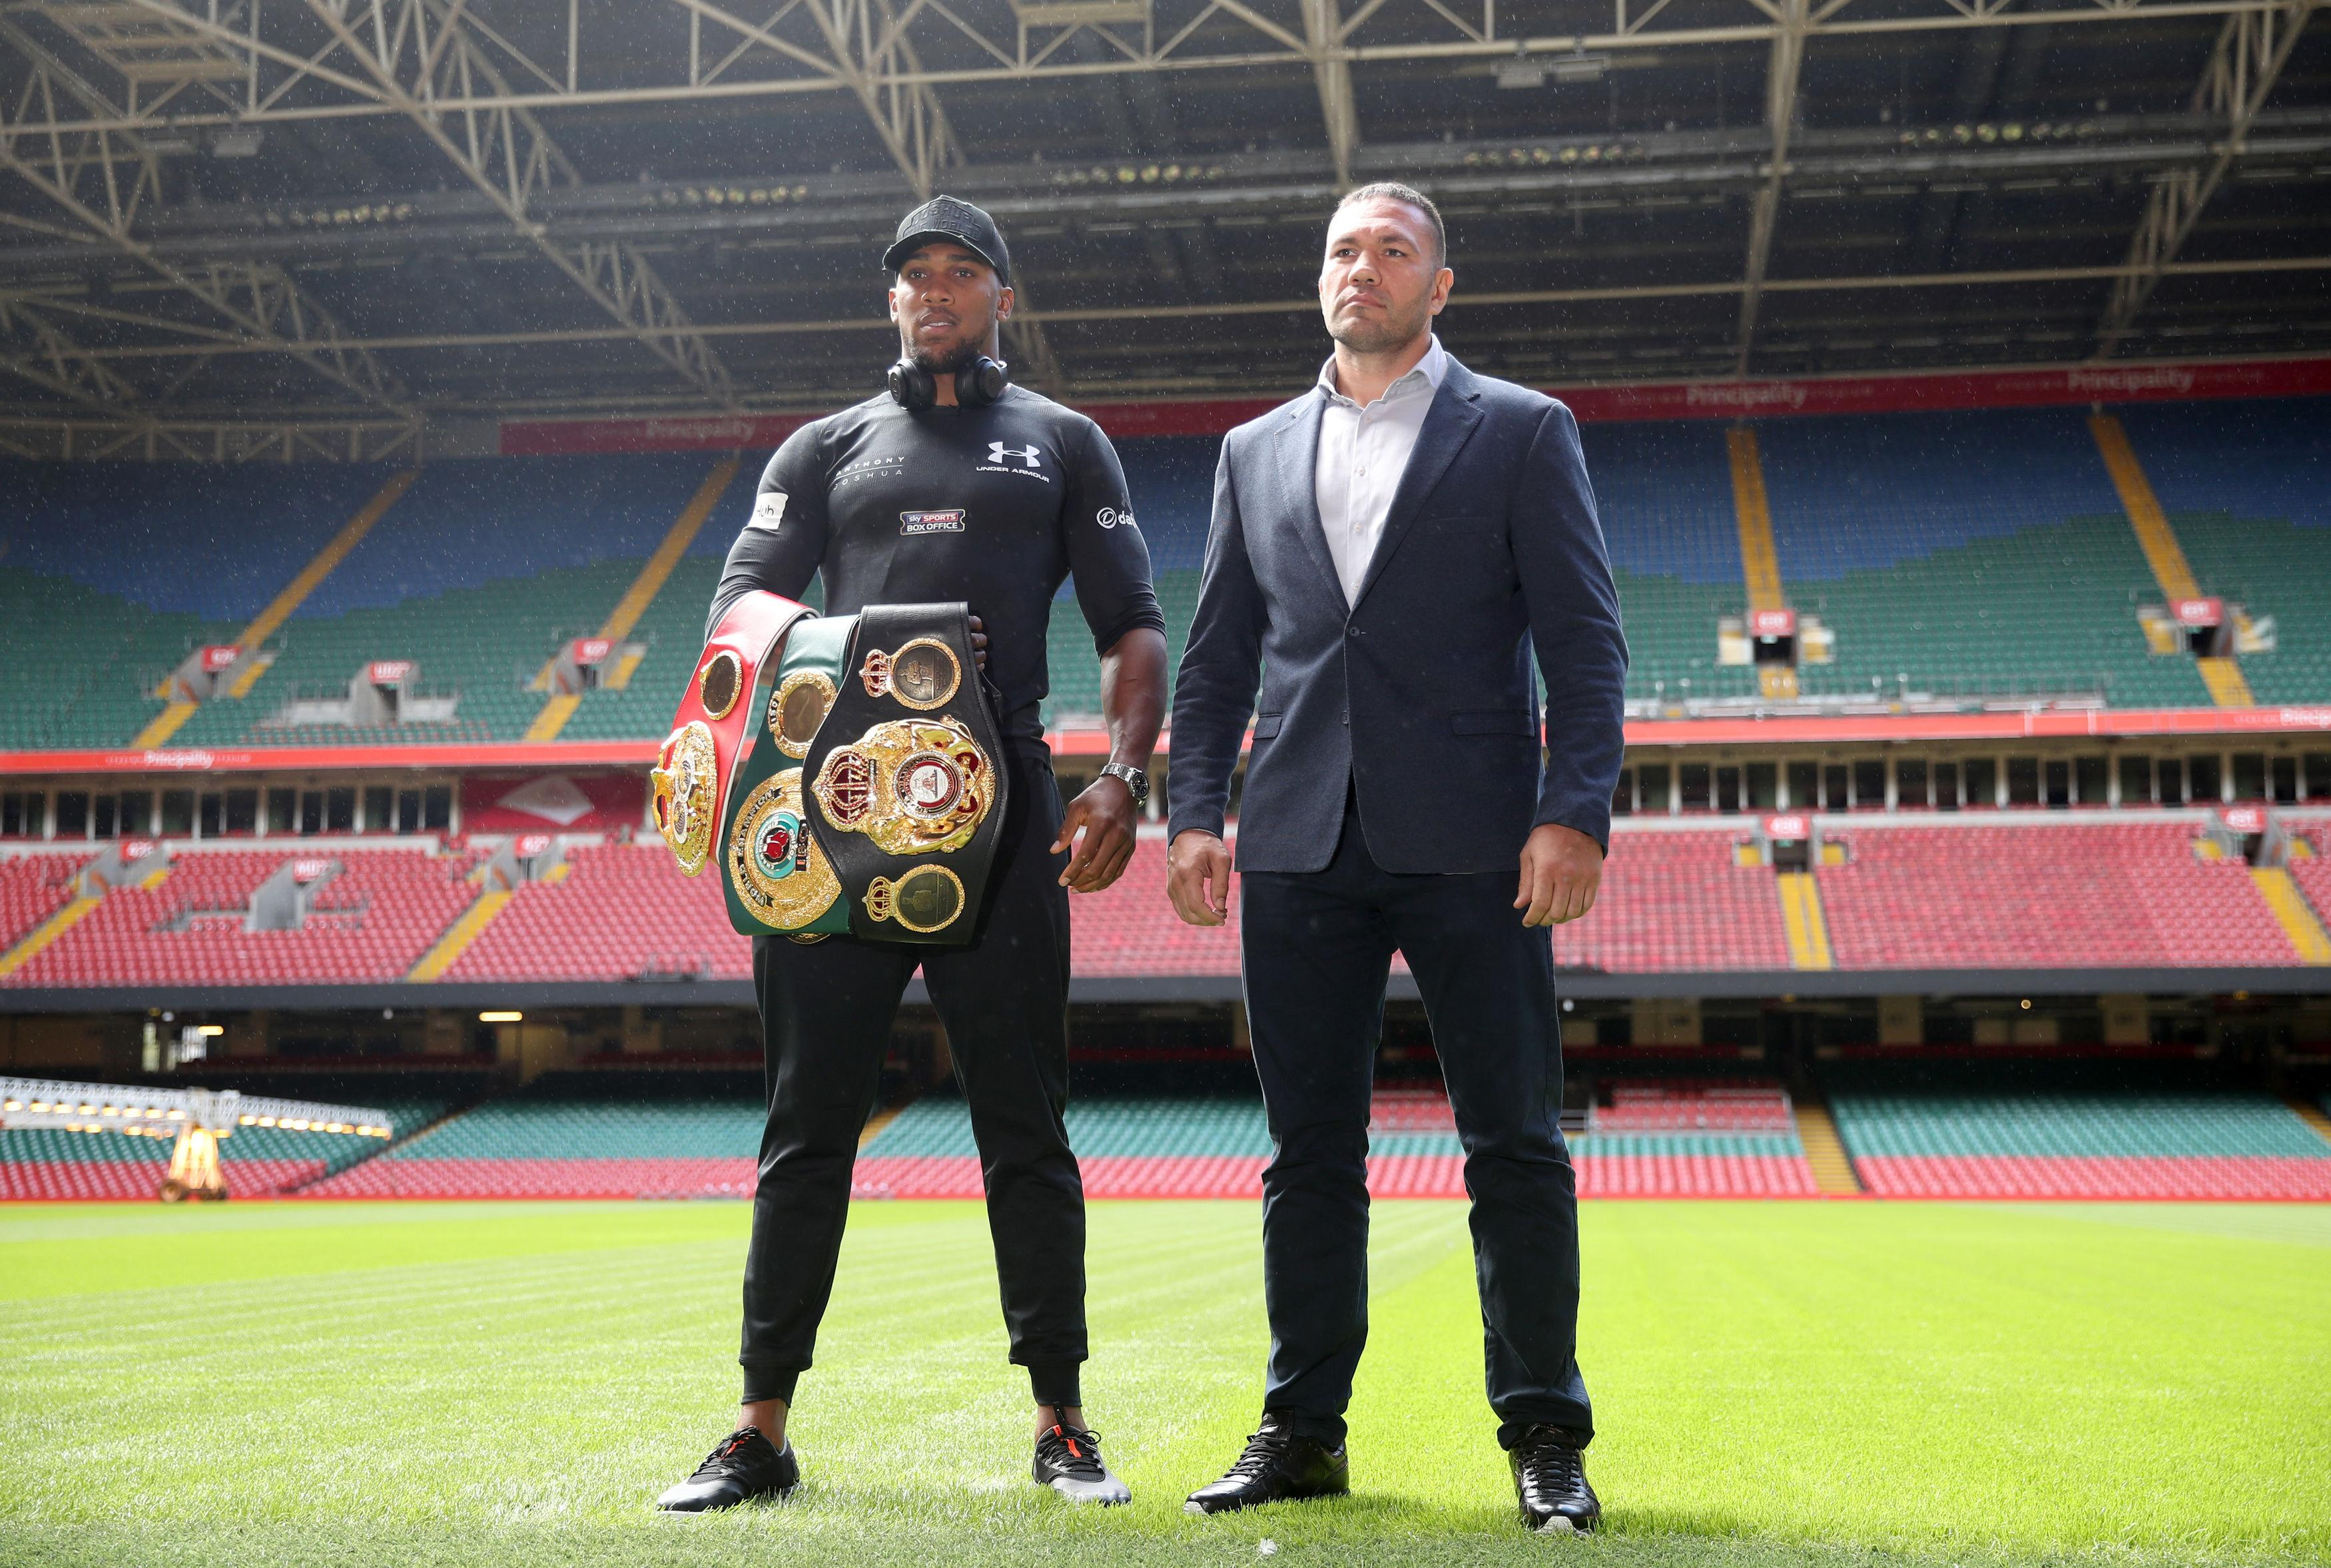 Anthony Joshua has fought twice at the Principality Stadium already and it looks set to be the main venue for his next fight